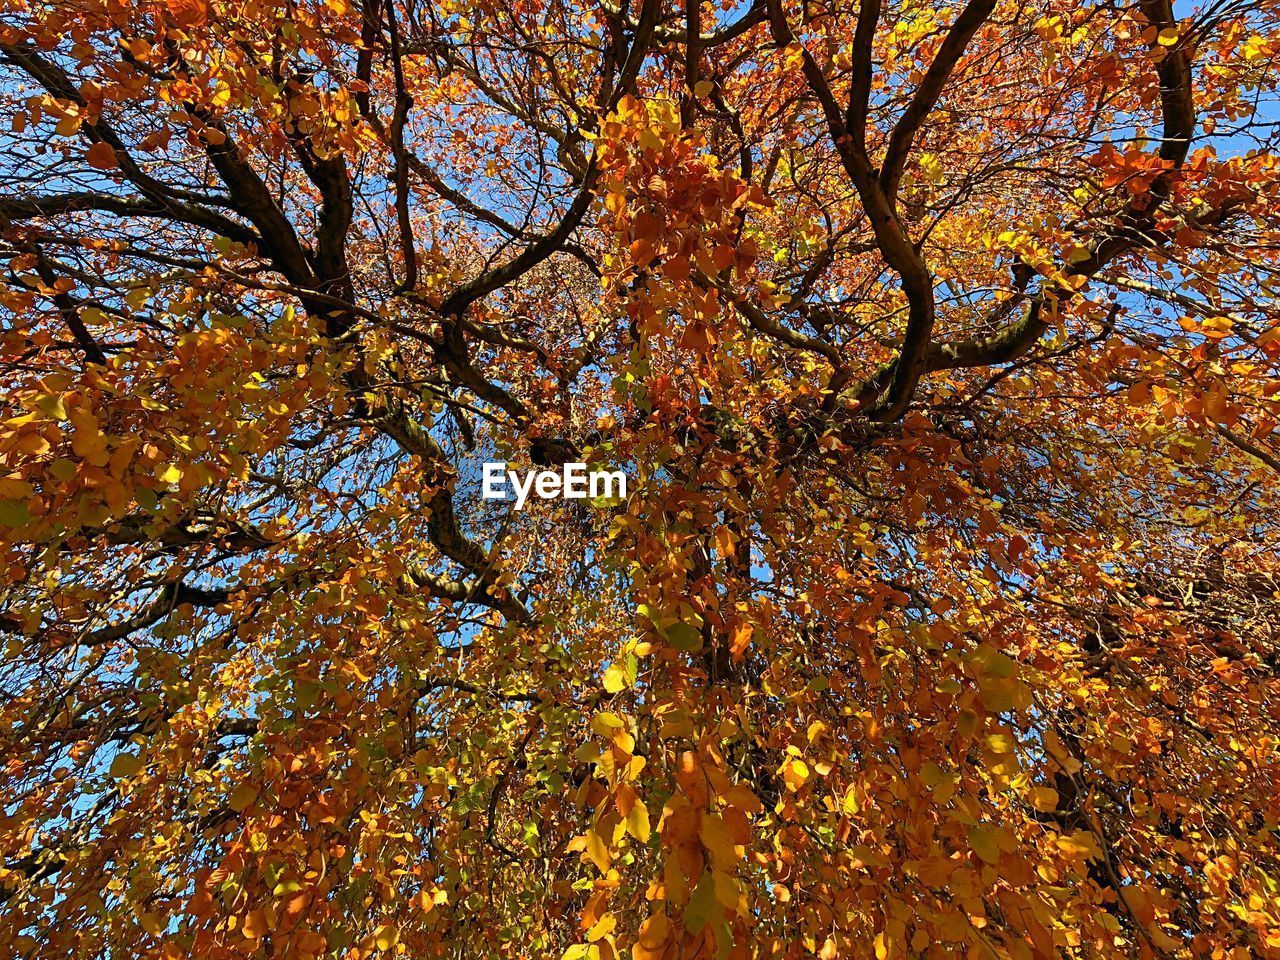 tree, plant, beauty in nature, autumn, low angle view, growth, branch, no people, full frame, backgrounds, change, nature, day, orange color, tranquility, flower, flowering plant, outdoors, tree trunk, trunk, tree canopy, fall, autumn collection, natural condition, directly below